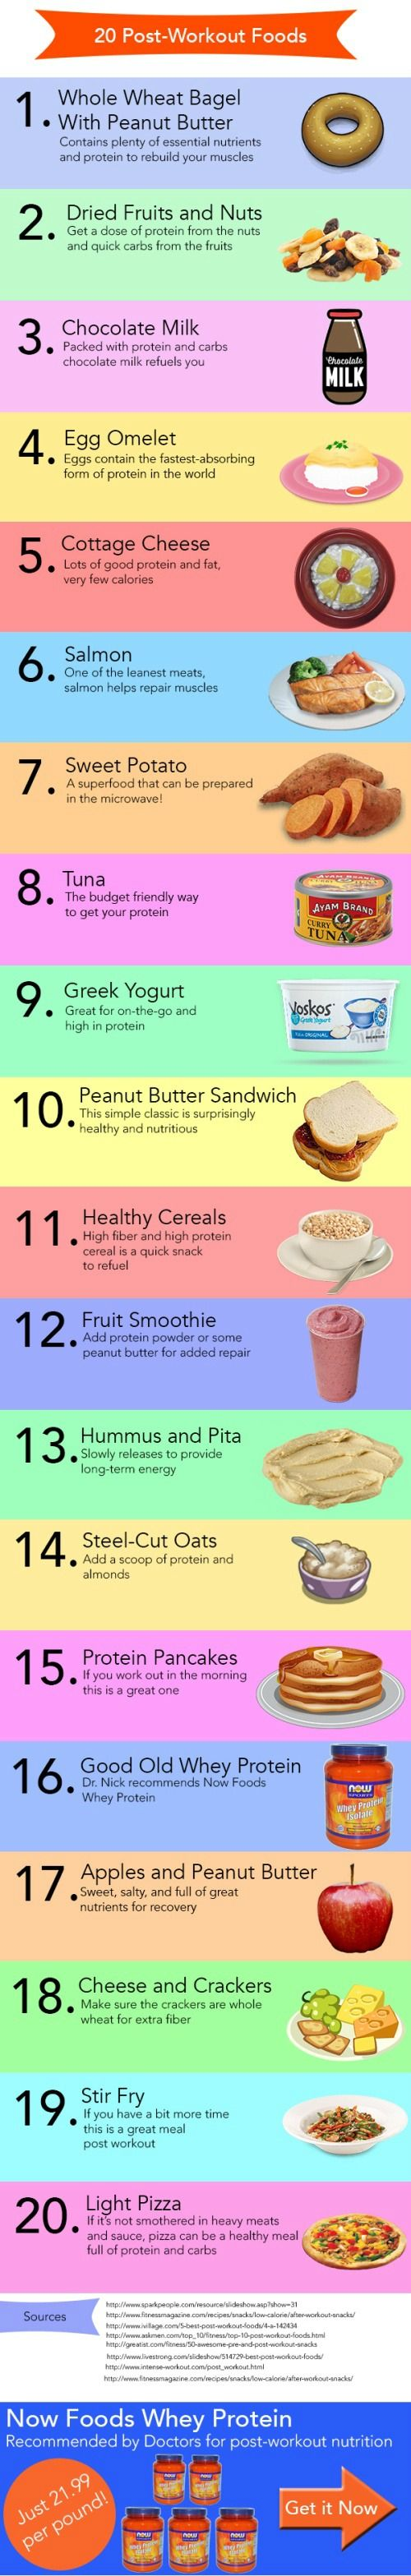 Quick & Easy Post Workout Foods